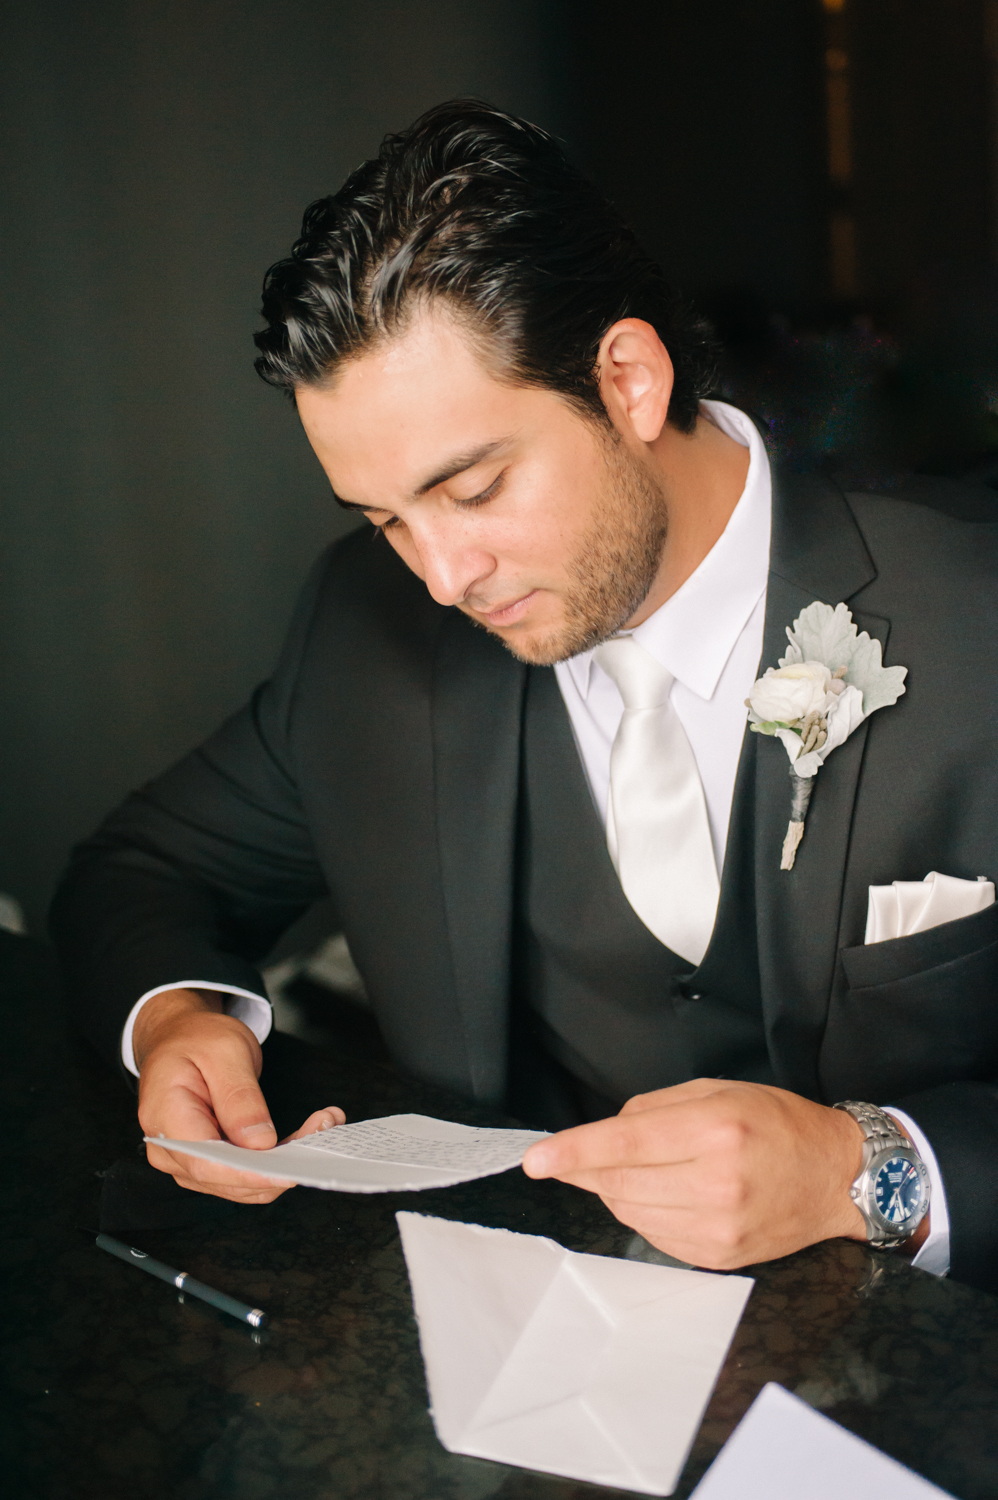 Groom reading letter from bride, St. Louis wedding photographer